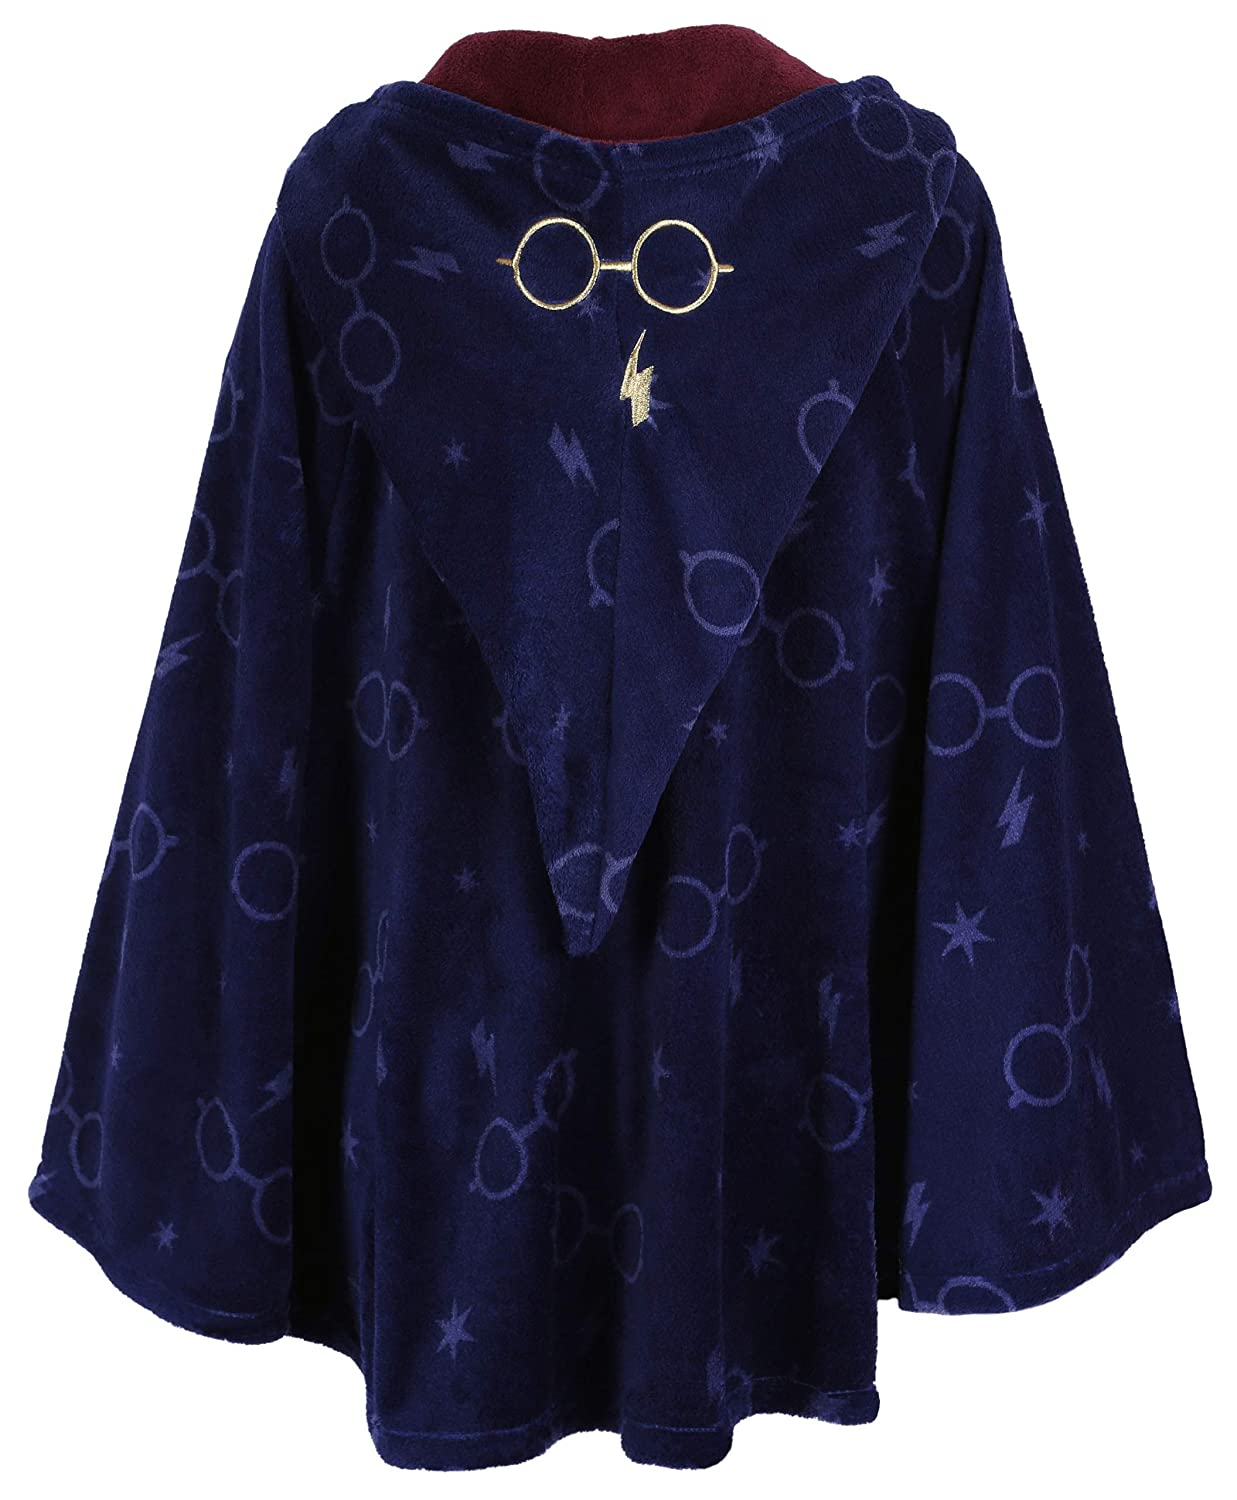 Navy Blue Soft /& Fluffy Hooded Poncho for Ladies Harry Potter